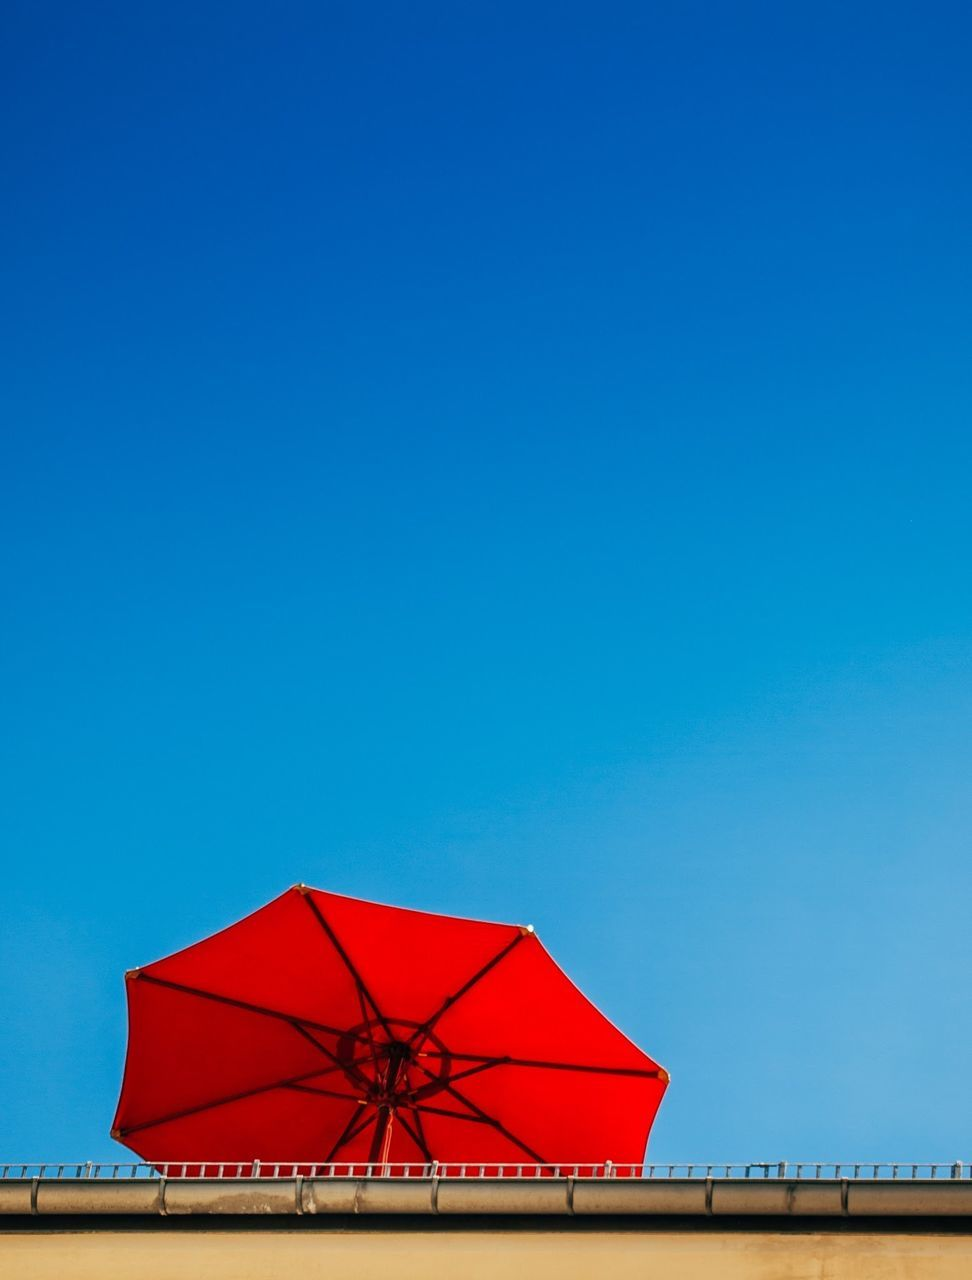 Low Angle View Of Red Umbrella By Wall Against Clear Blue Sky